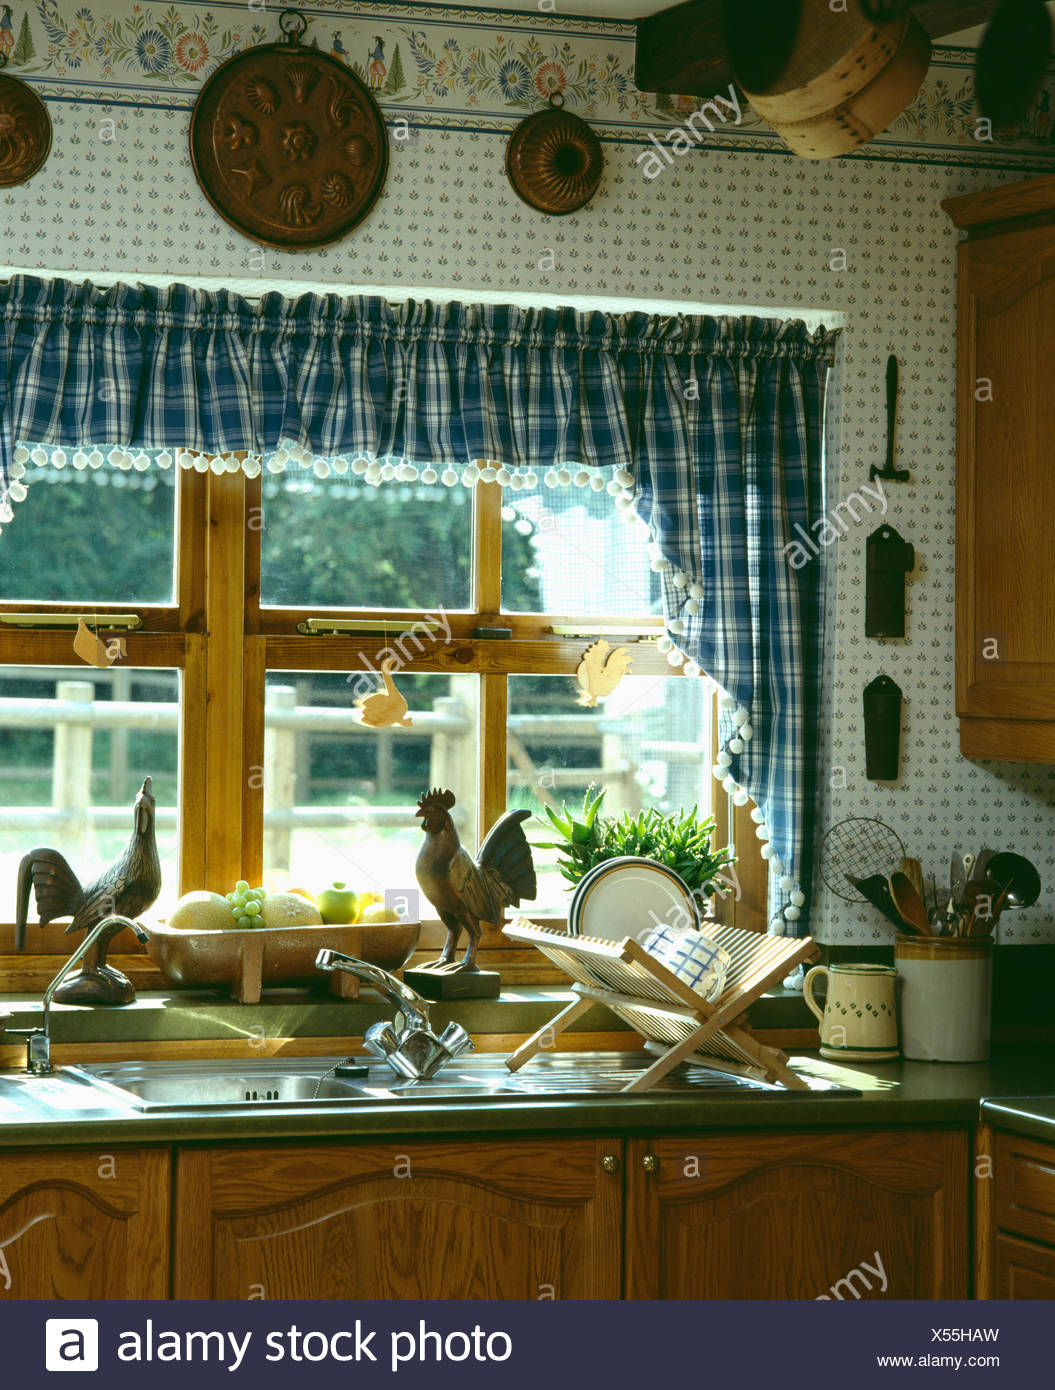 https www alamy com blue white checked curtains and pelmet on window above plate rack on draining board of kitchen sink image278562561 html